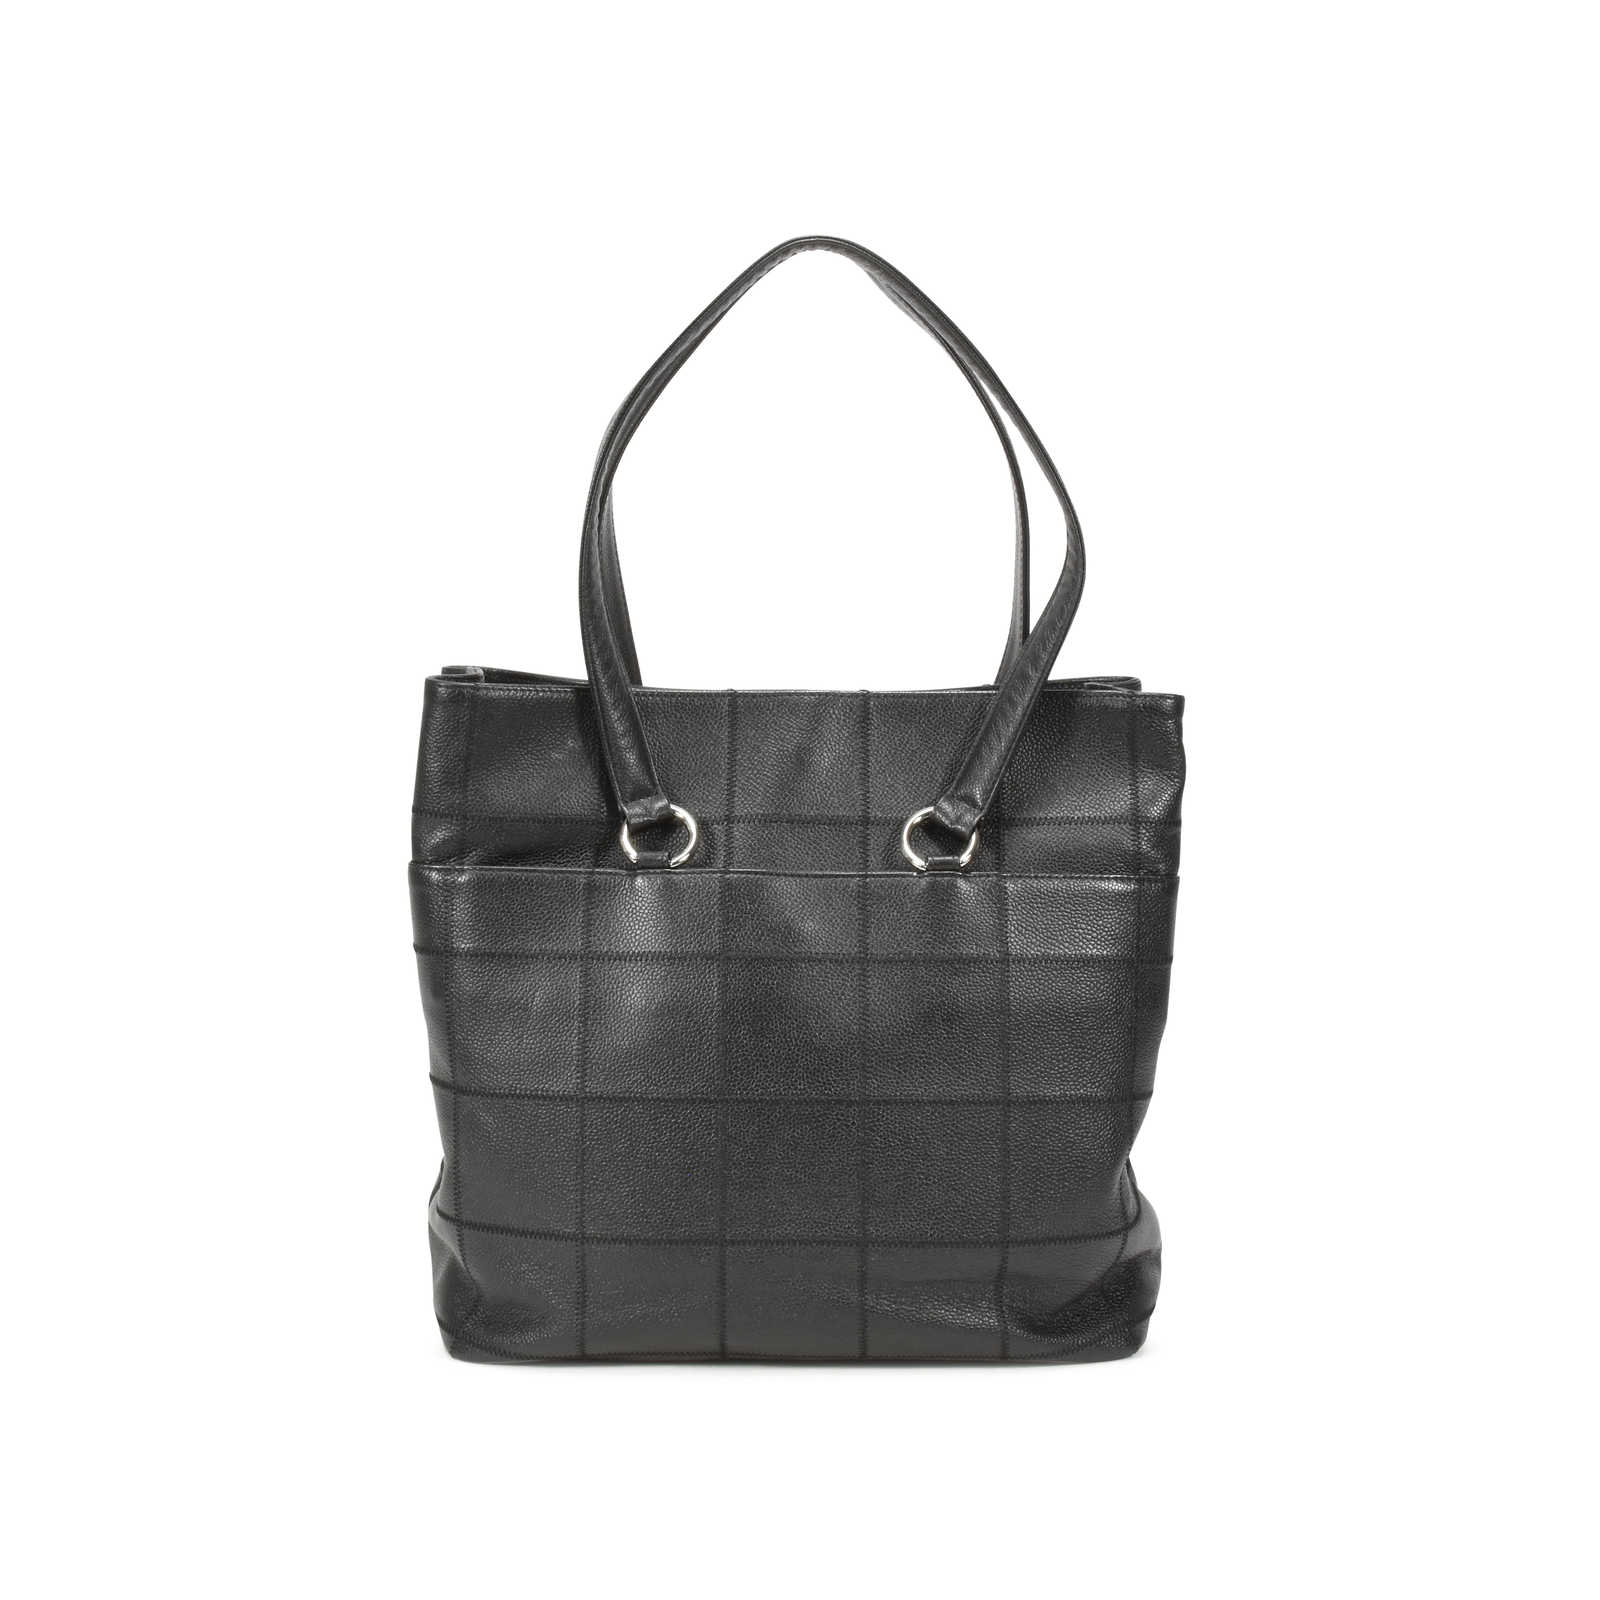 ... Authentic Pre Owned Chanel Caviar Square Quilted Tote Bag  (PSS-126-00017) ... 0b7fd594ff